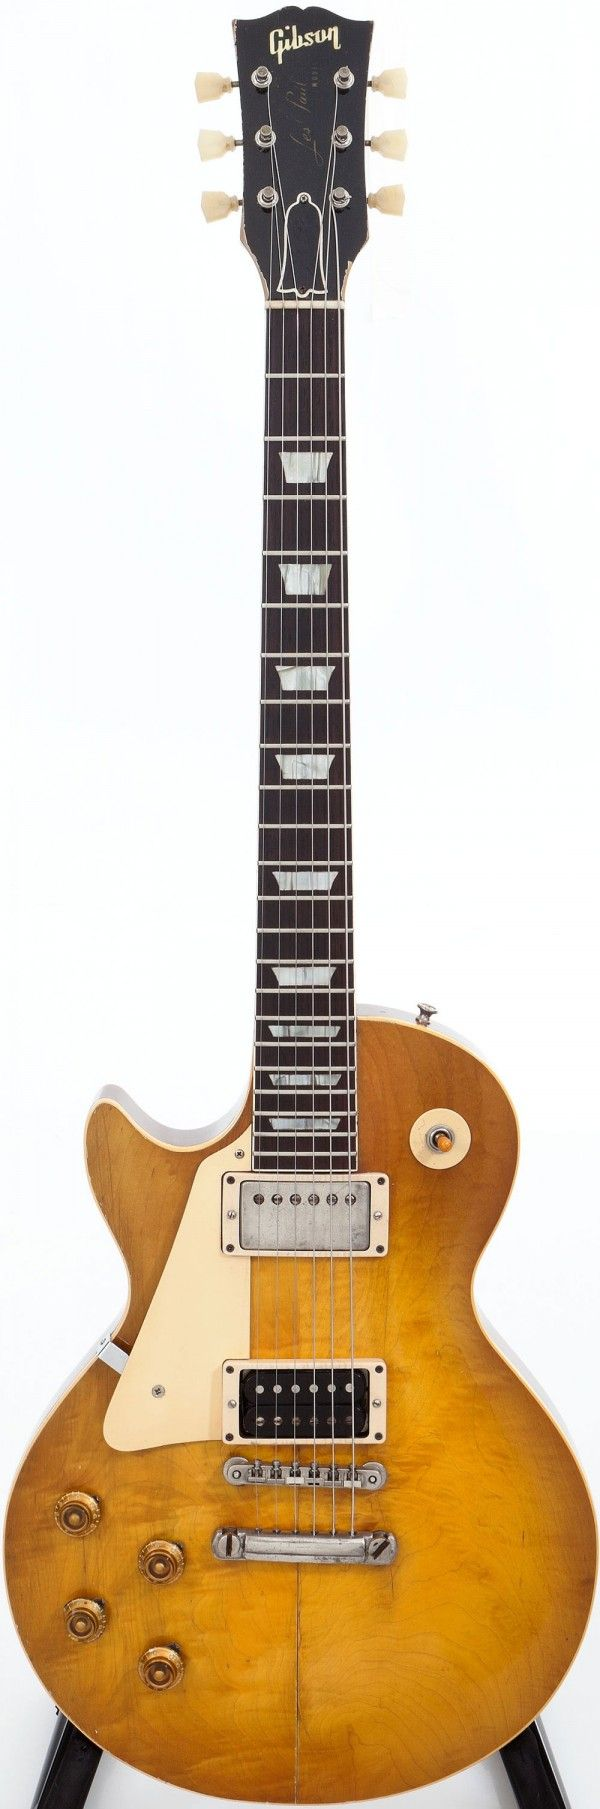 Extremely Rare 1959 Gibson Les Paul Standard Left-Handed Guitar.